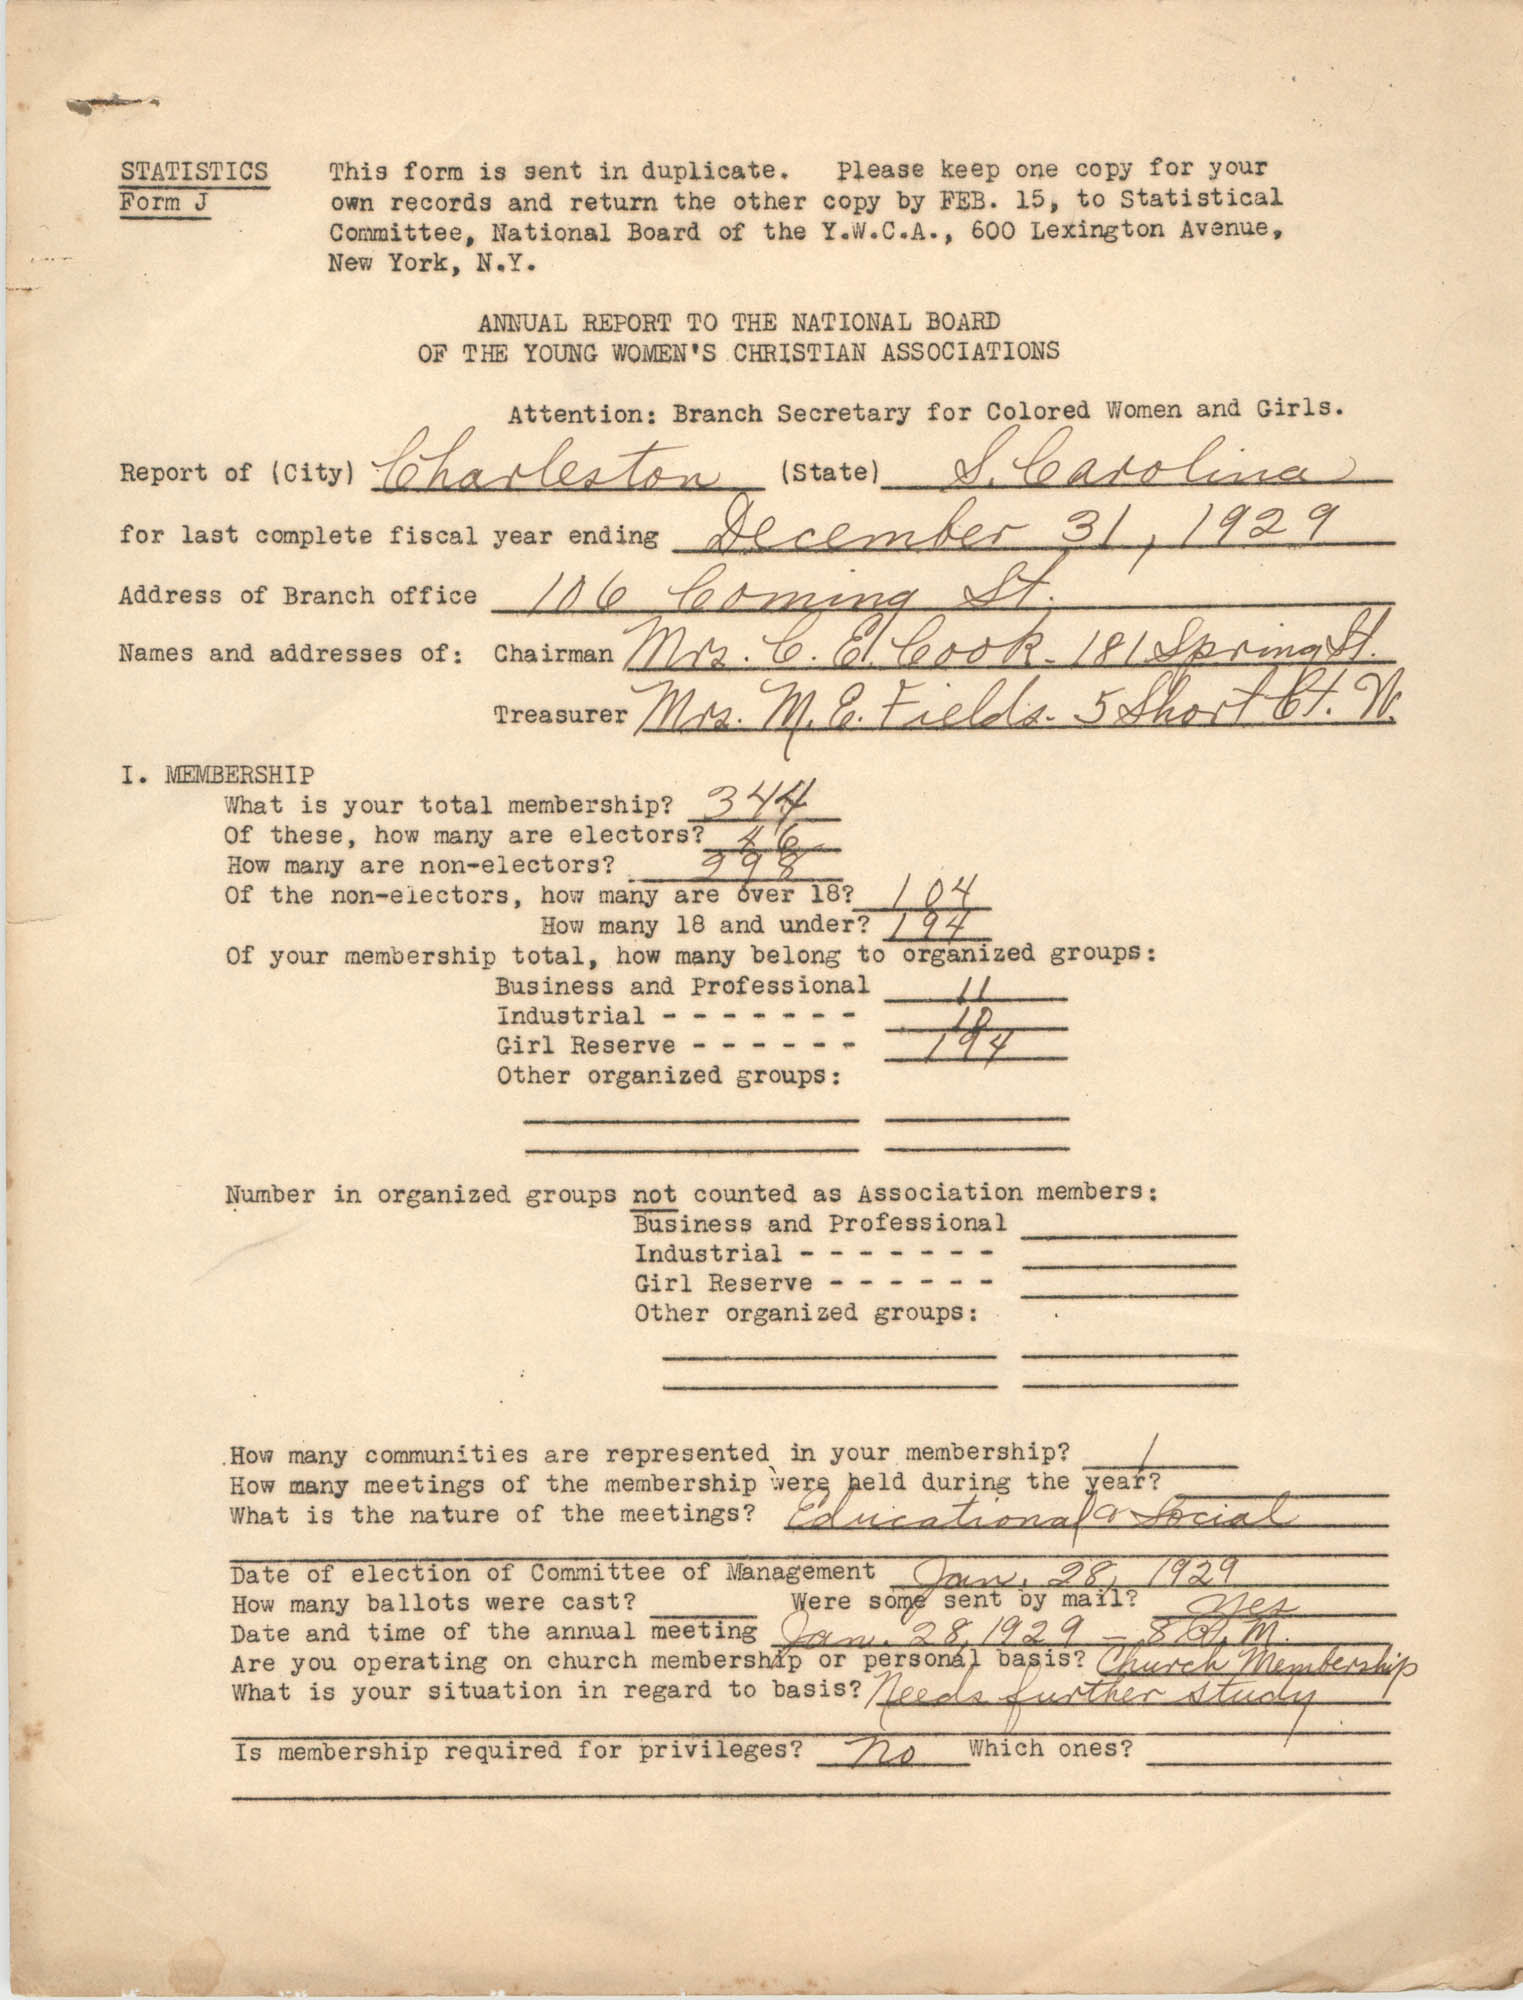 Annual Report to the National Board of the Young Women's Christian Associations, December 31, 1931